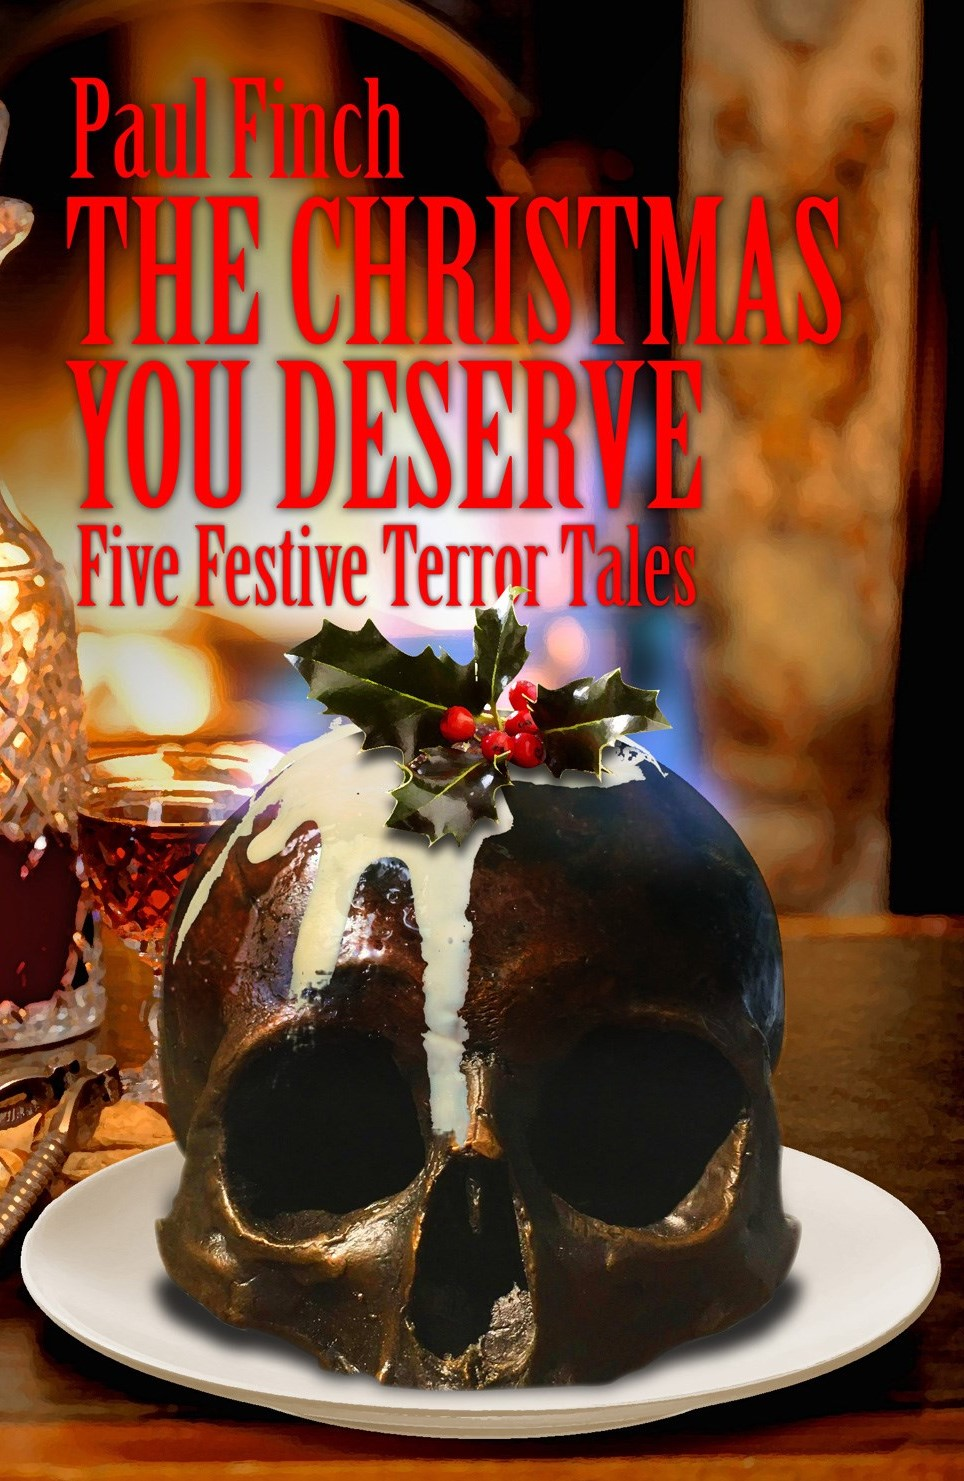 THE CHRISTMAS YOU DESERVE